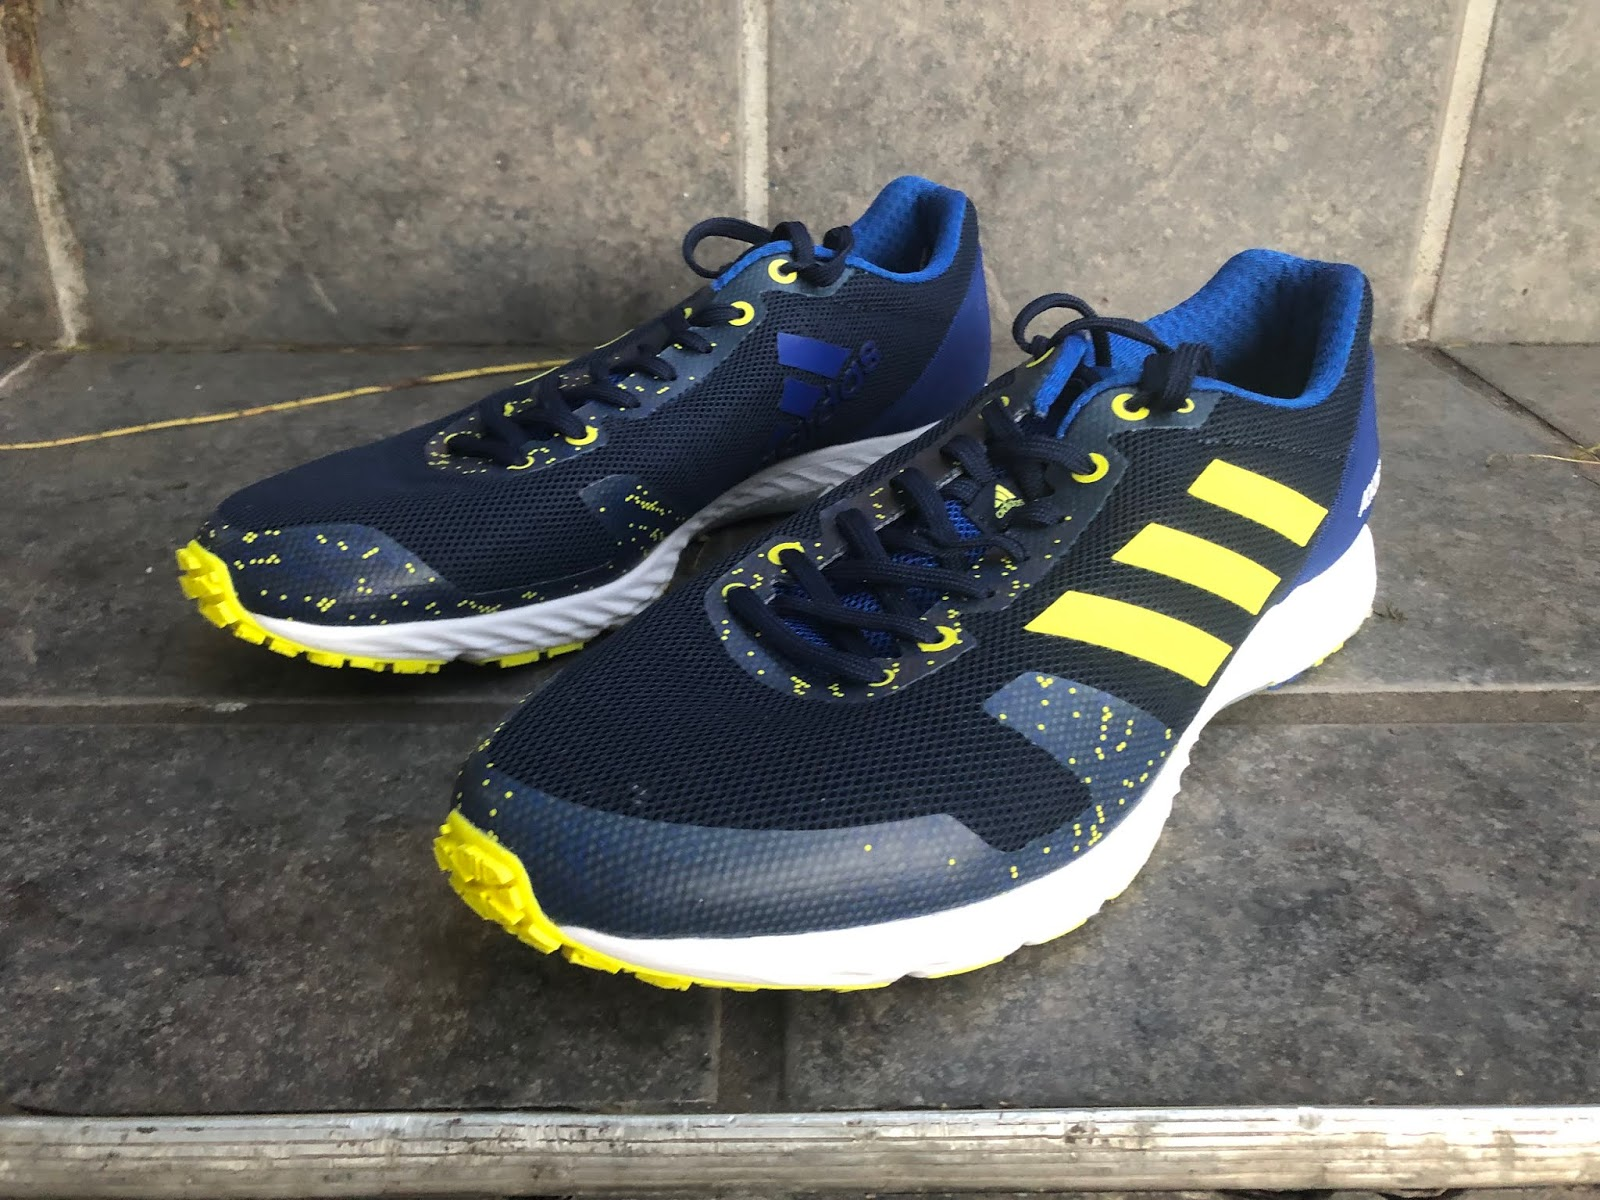 24d5cf0829e1 Specifications (via Runnerinn) Weight  7.0 oz (Men s size 9) Stack Height   15mm   8.5 mm. Drop  6.5 mm. Classification  Racing Flat